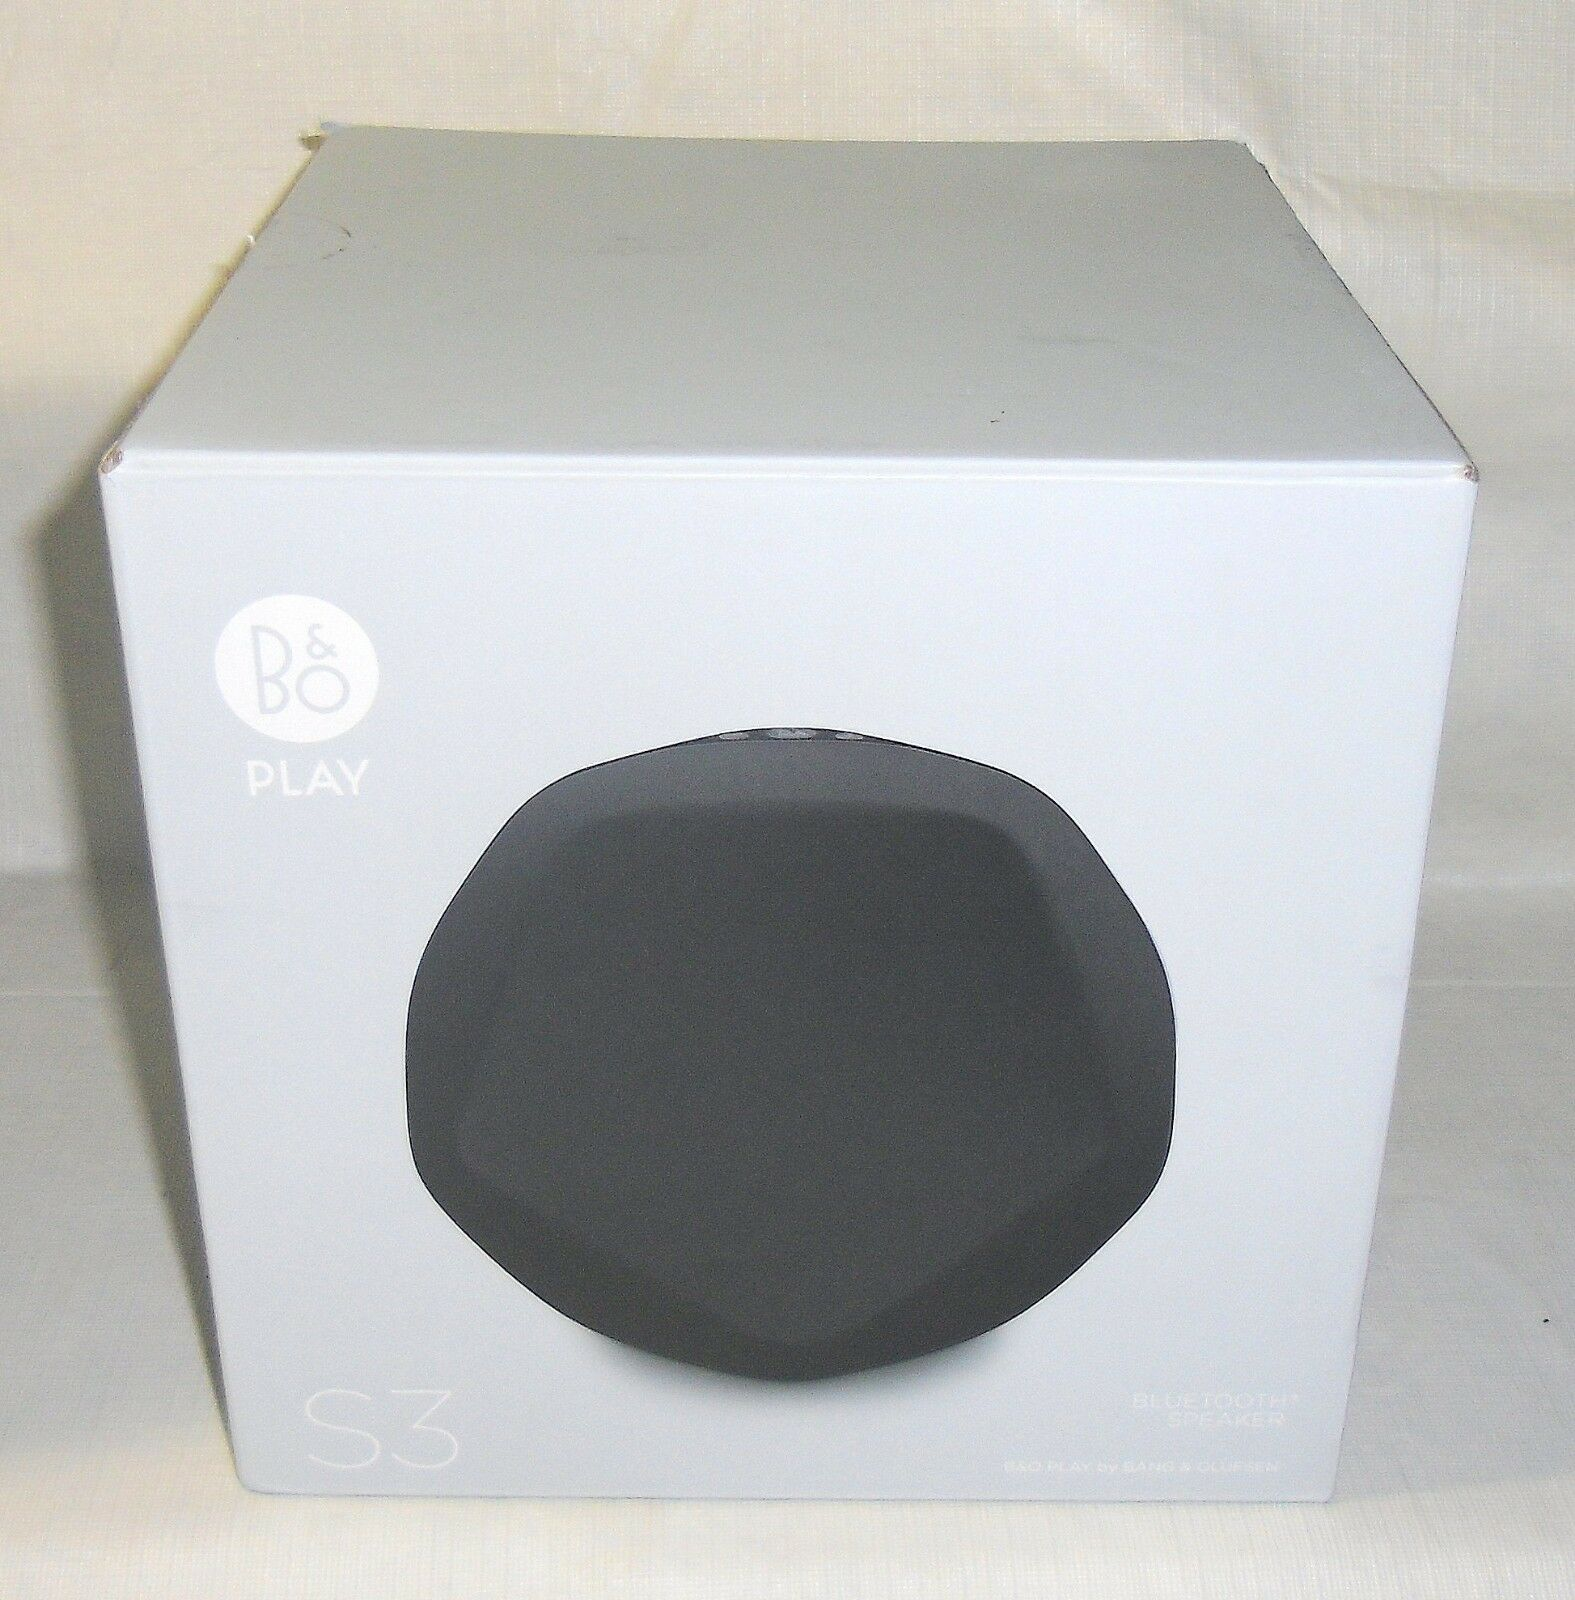 $89.95 - New B&O PLAY by Bang & Olufsen Beoplay S3 Home Wireless Bluetooth Speaker Black